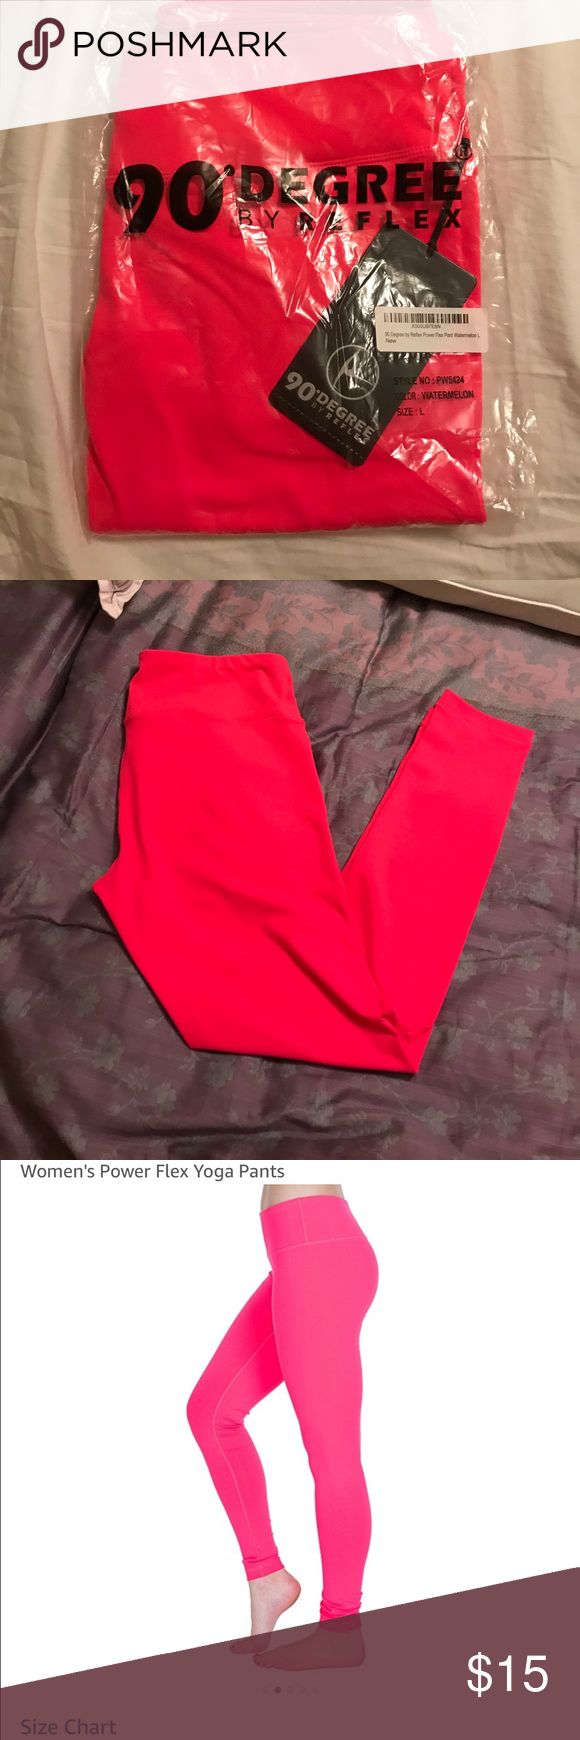 90 degrees neon watermelon leggings Bought two - didn't return in time - best leggings for yoga/ hanging - so comfy- amazing quality 90 Degree By Reflex Pants Leggings